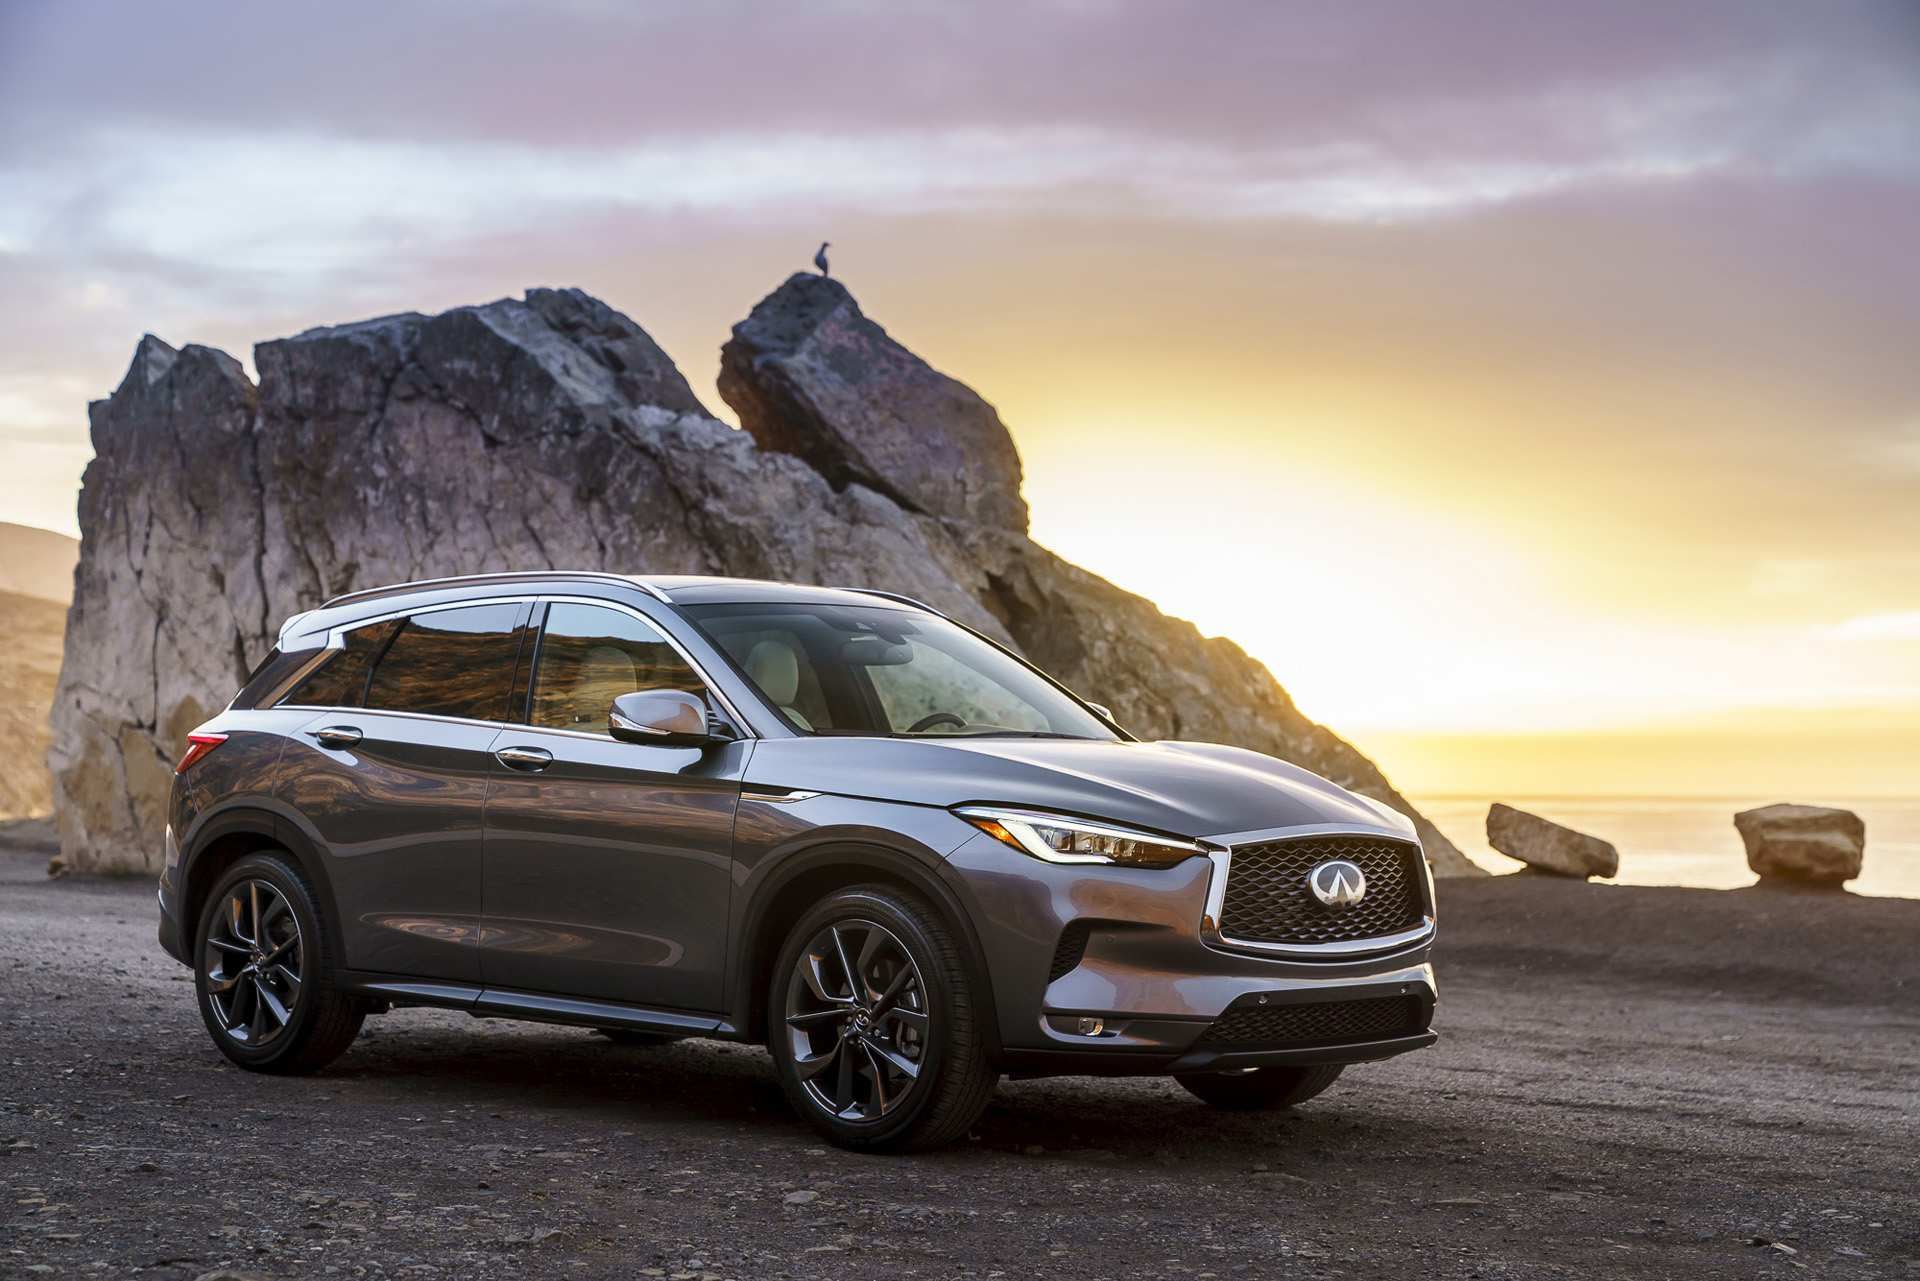 49 New New 2019 Infiniti Qx50 Horsepower Review Redesign And Review